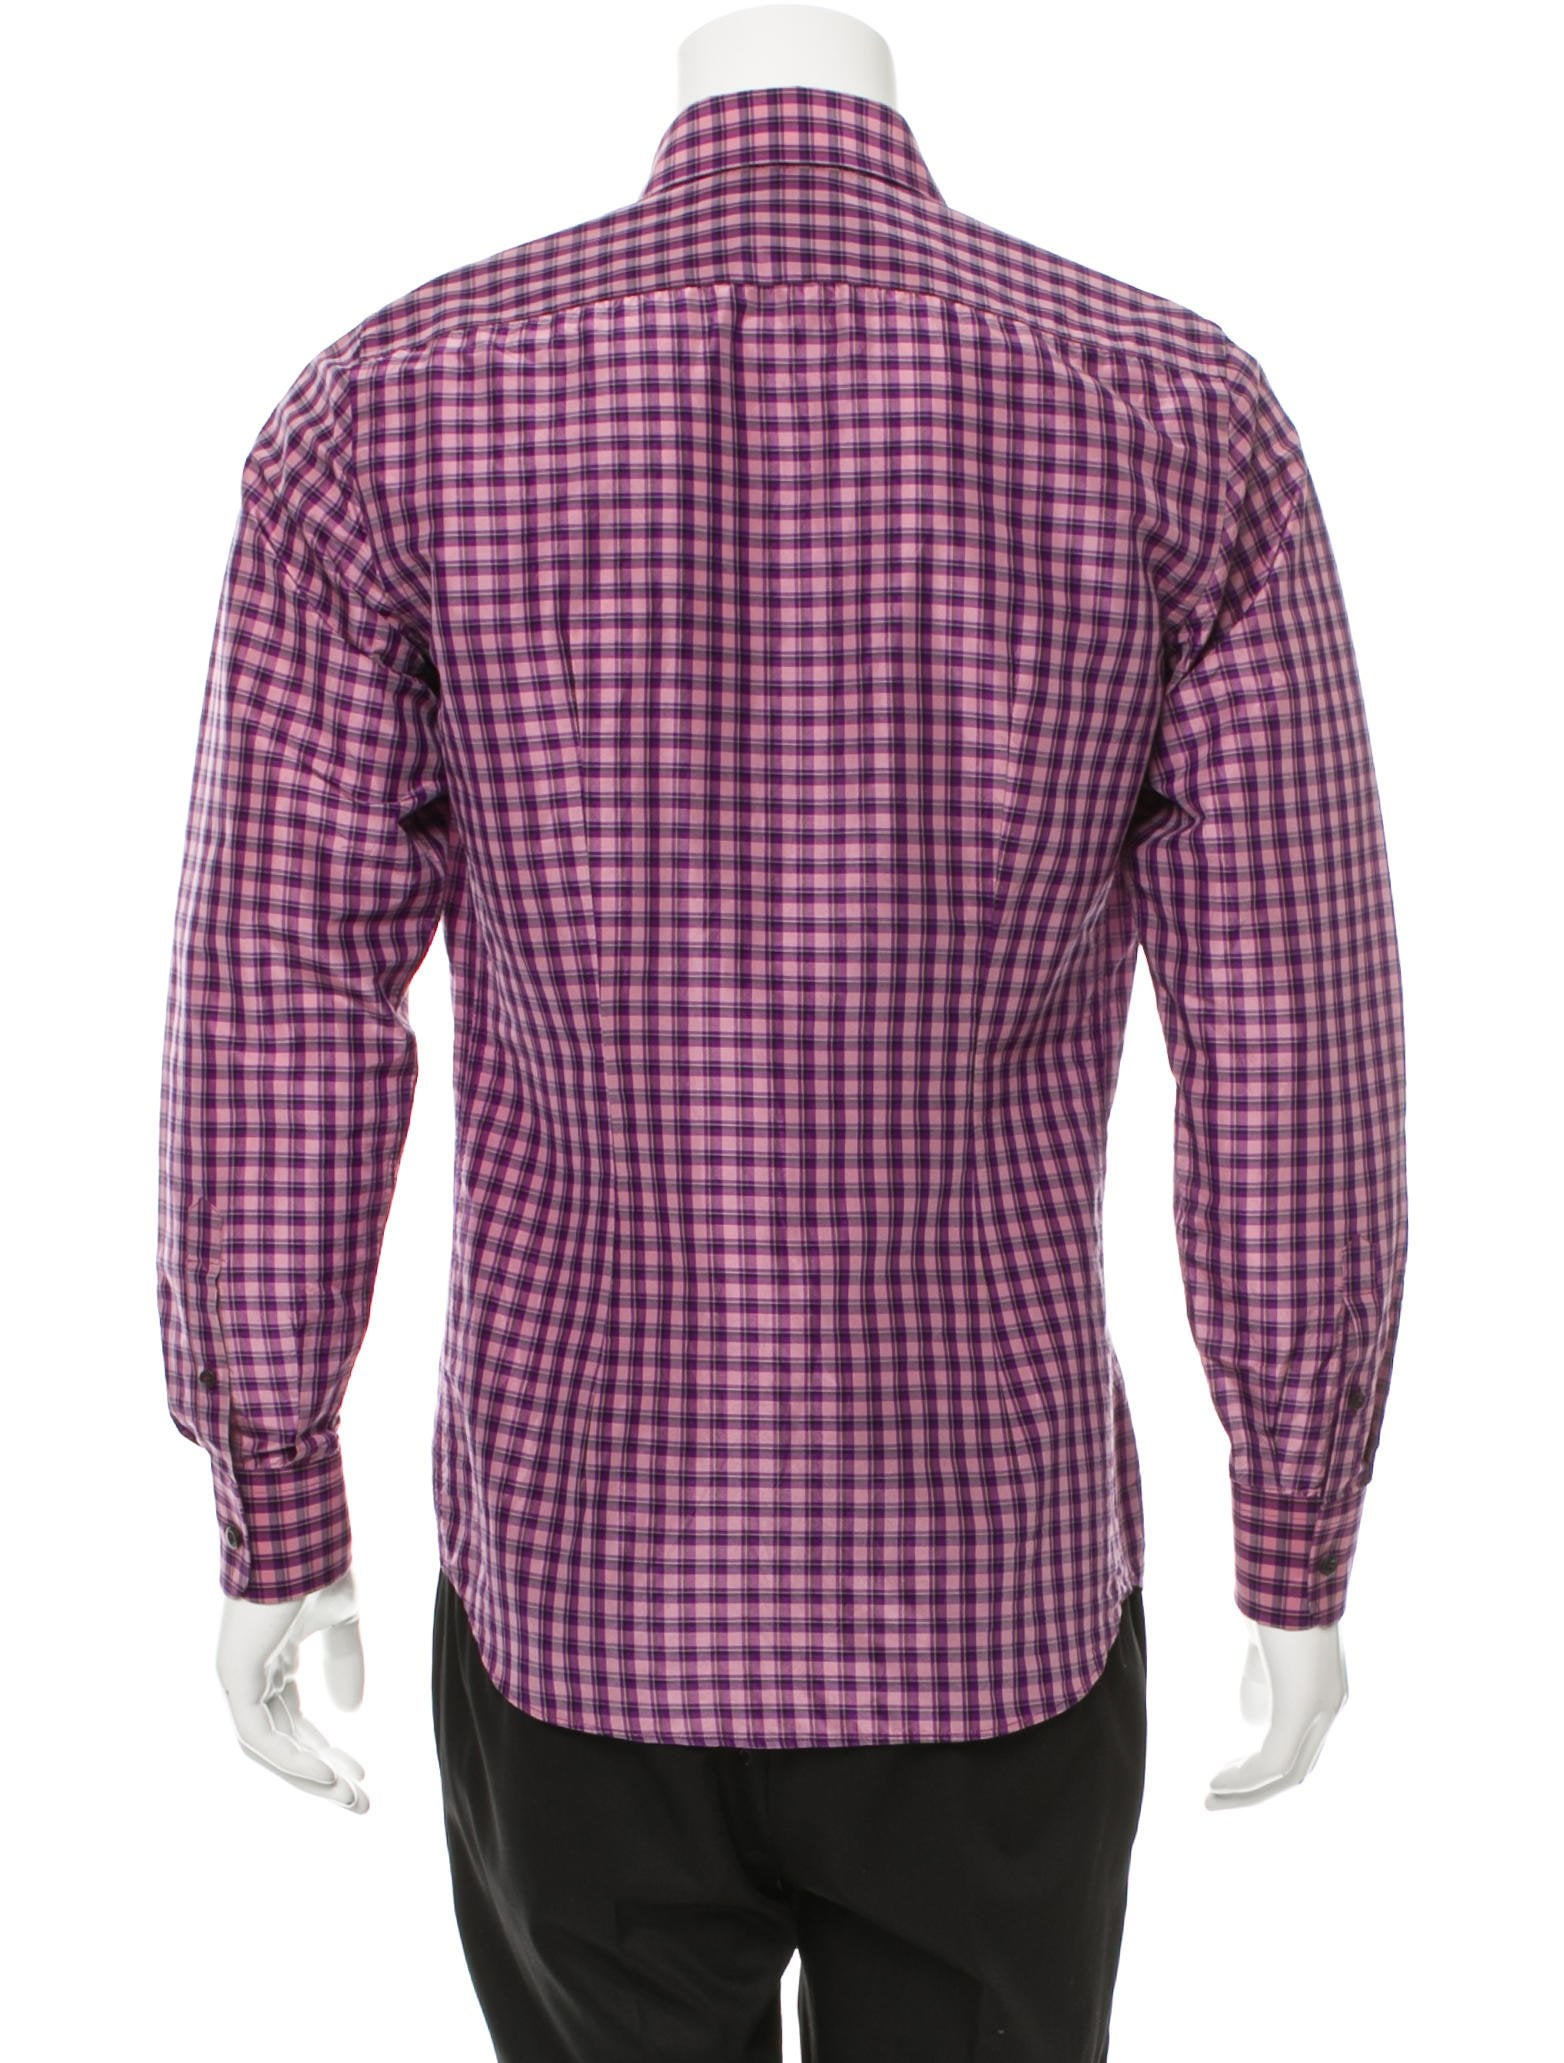 Prada Plaid Button Up Shirt Clothing Pra145337 The